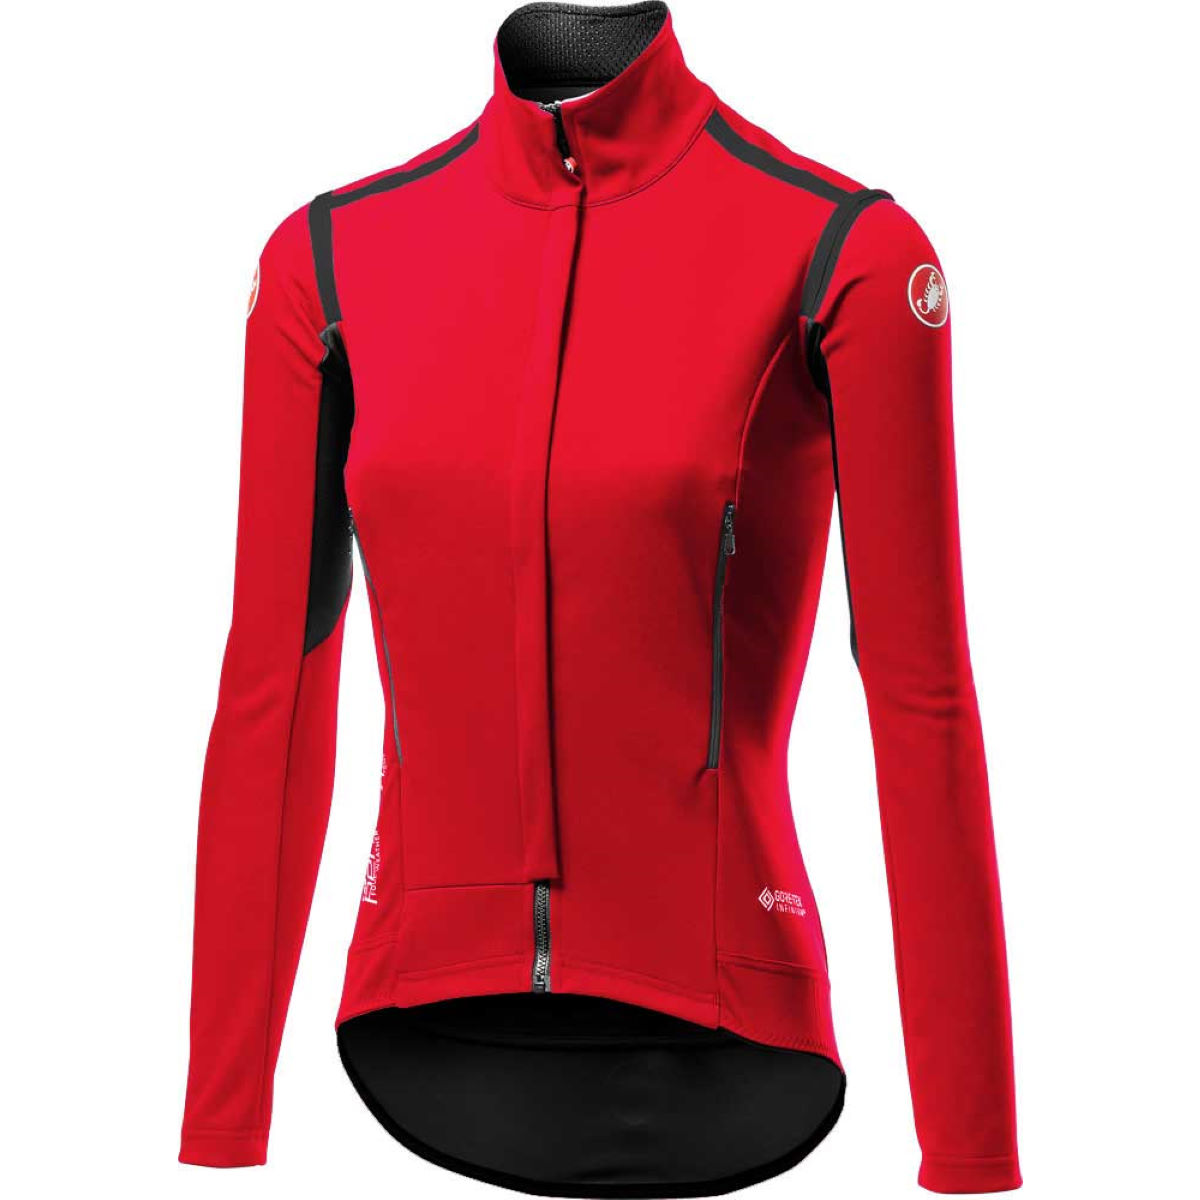 Castelli Women's Perfetto ROS Jersey (Limited Ed) - Maillots